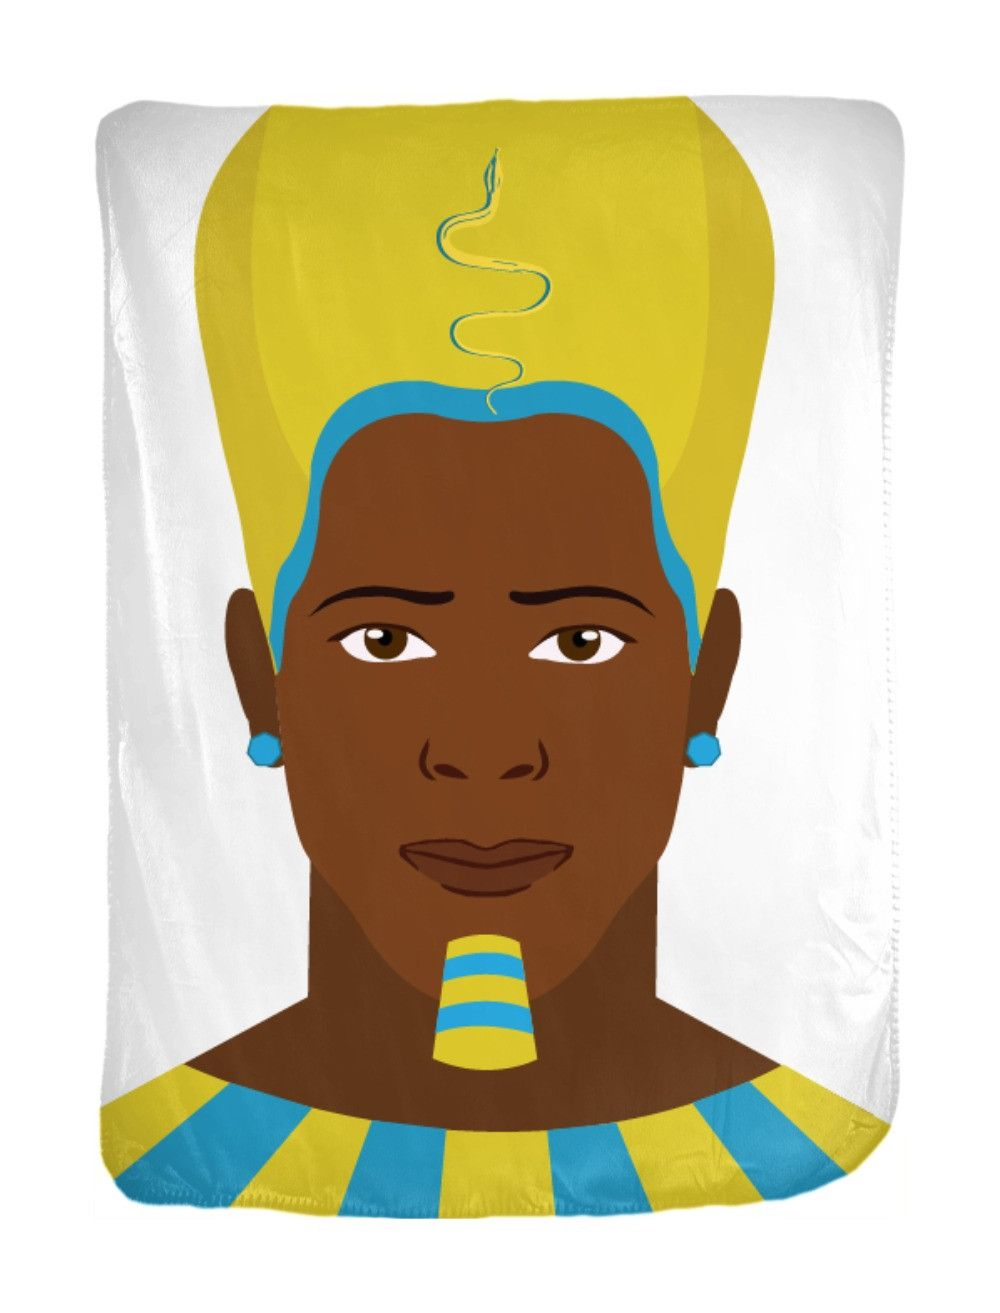 Design your t-shirt egypt - Who Doesn T Like Snuggling Under A Soft Warm Blanket Now Imagine That Blanket With Your Favorite Chocolate Ancestor Design All Over It And Snuggling Time